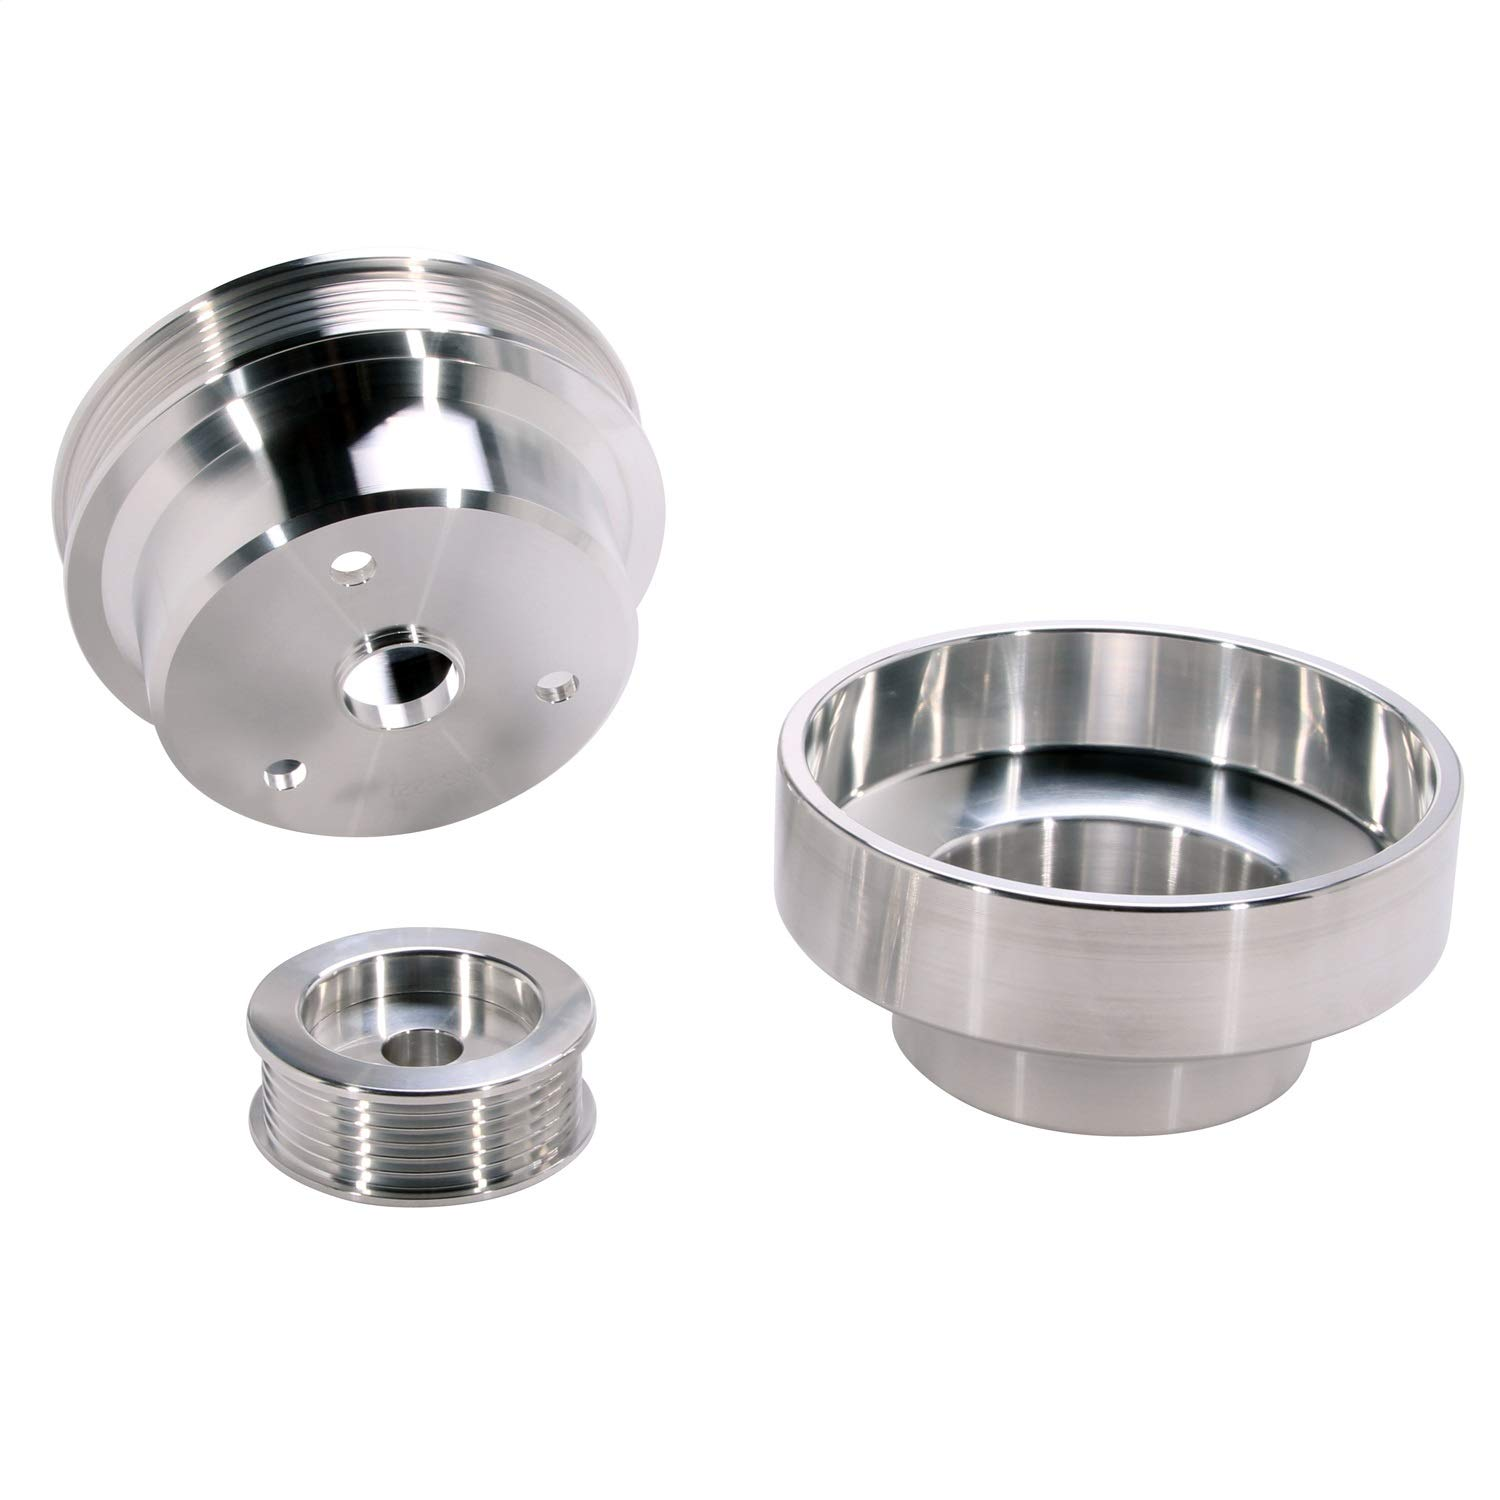 BBK 1603 Underdrive Pulley Kit for GM Truck 4.3/5.0/5.7L - 3 Piece CNC Machined Aluminum by BBK Performance